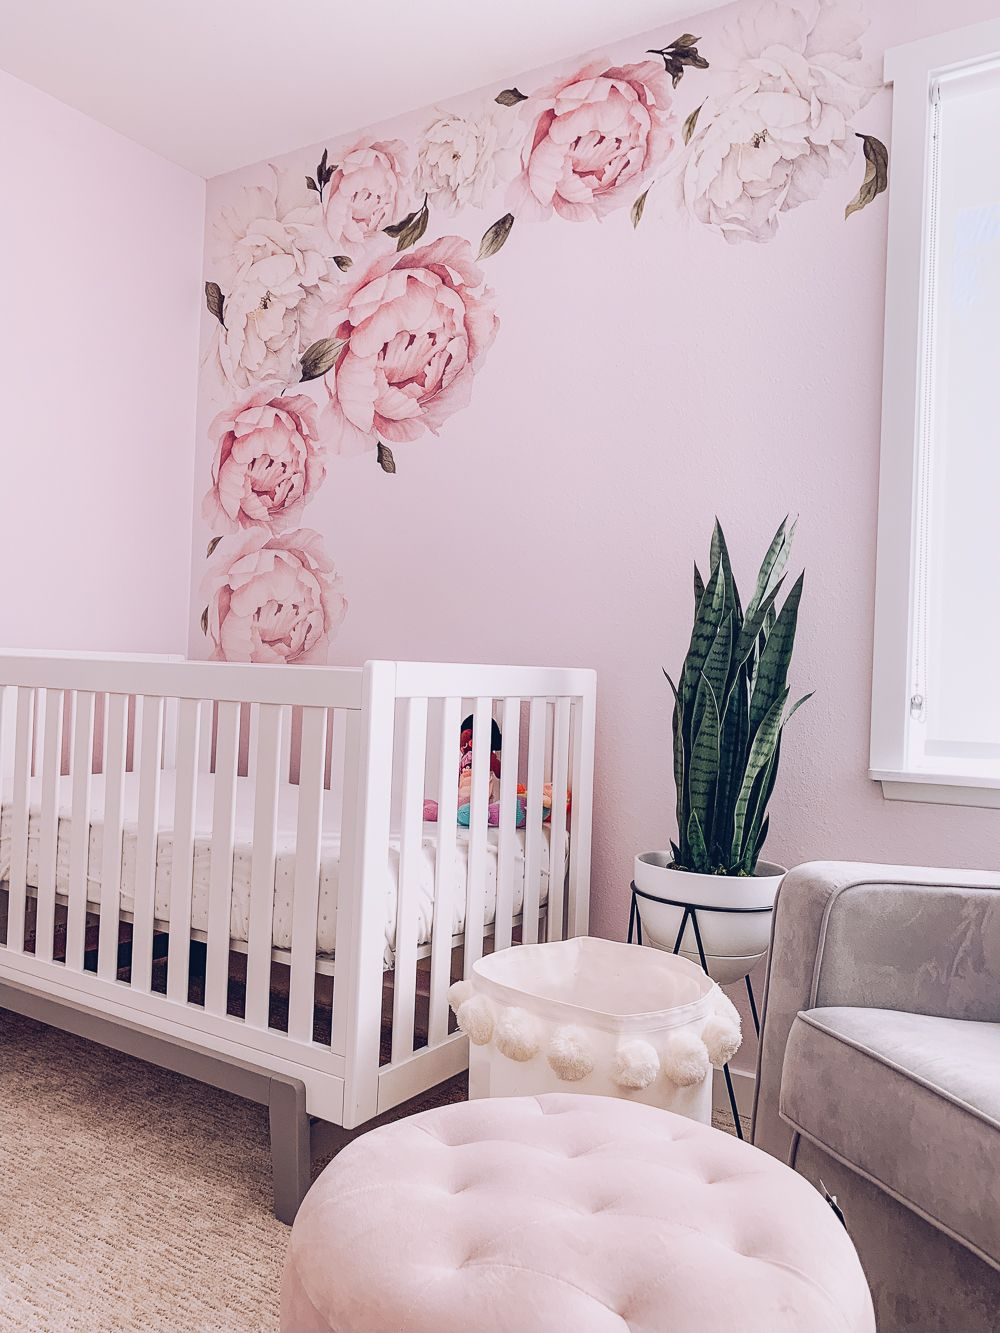 Office Decor Baby Girls Decor Wildflower Vintage Falling Flowers Floral Decor Purple Blue Decor Red Nursery Wall Decals